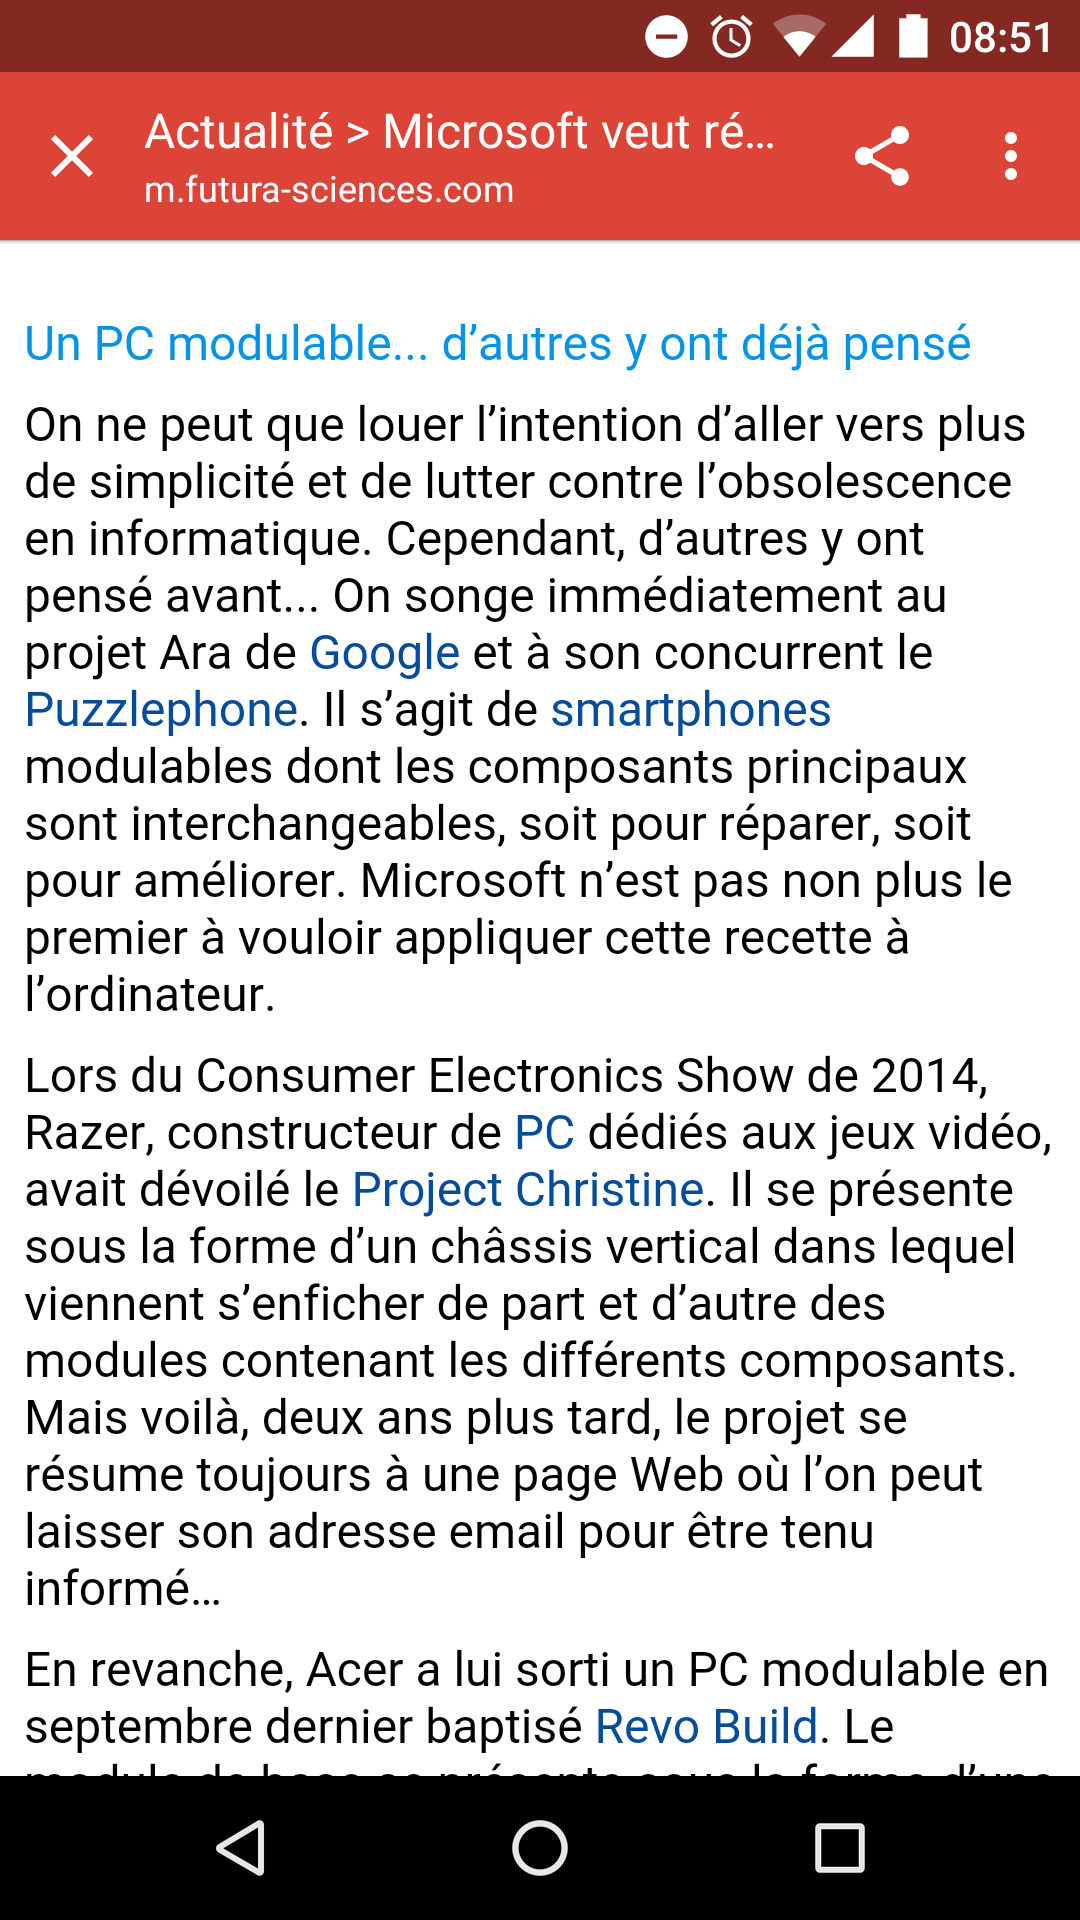 Screenshot (19 févr. 2016 08:51:59)